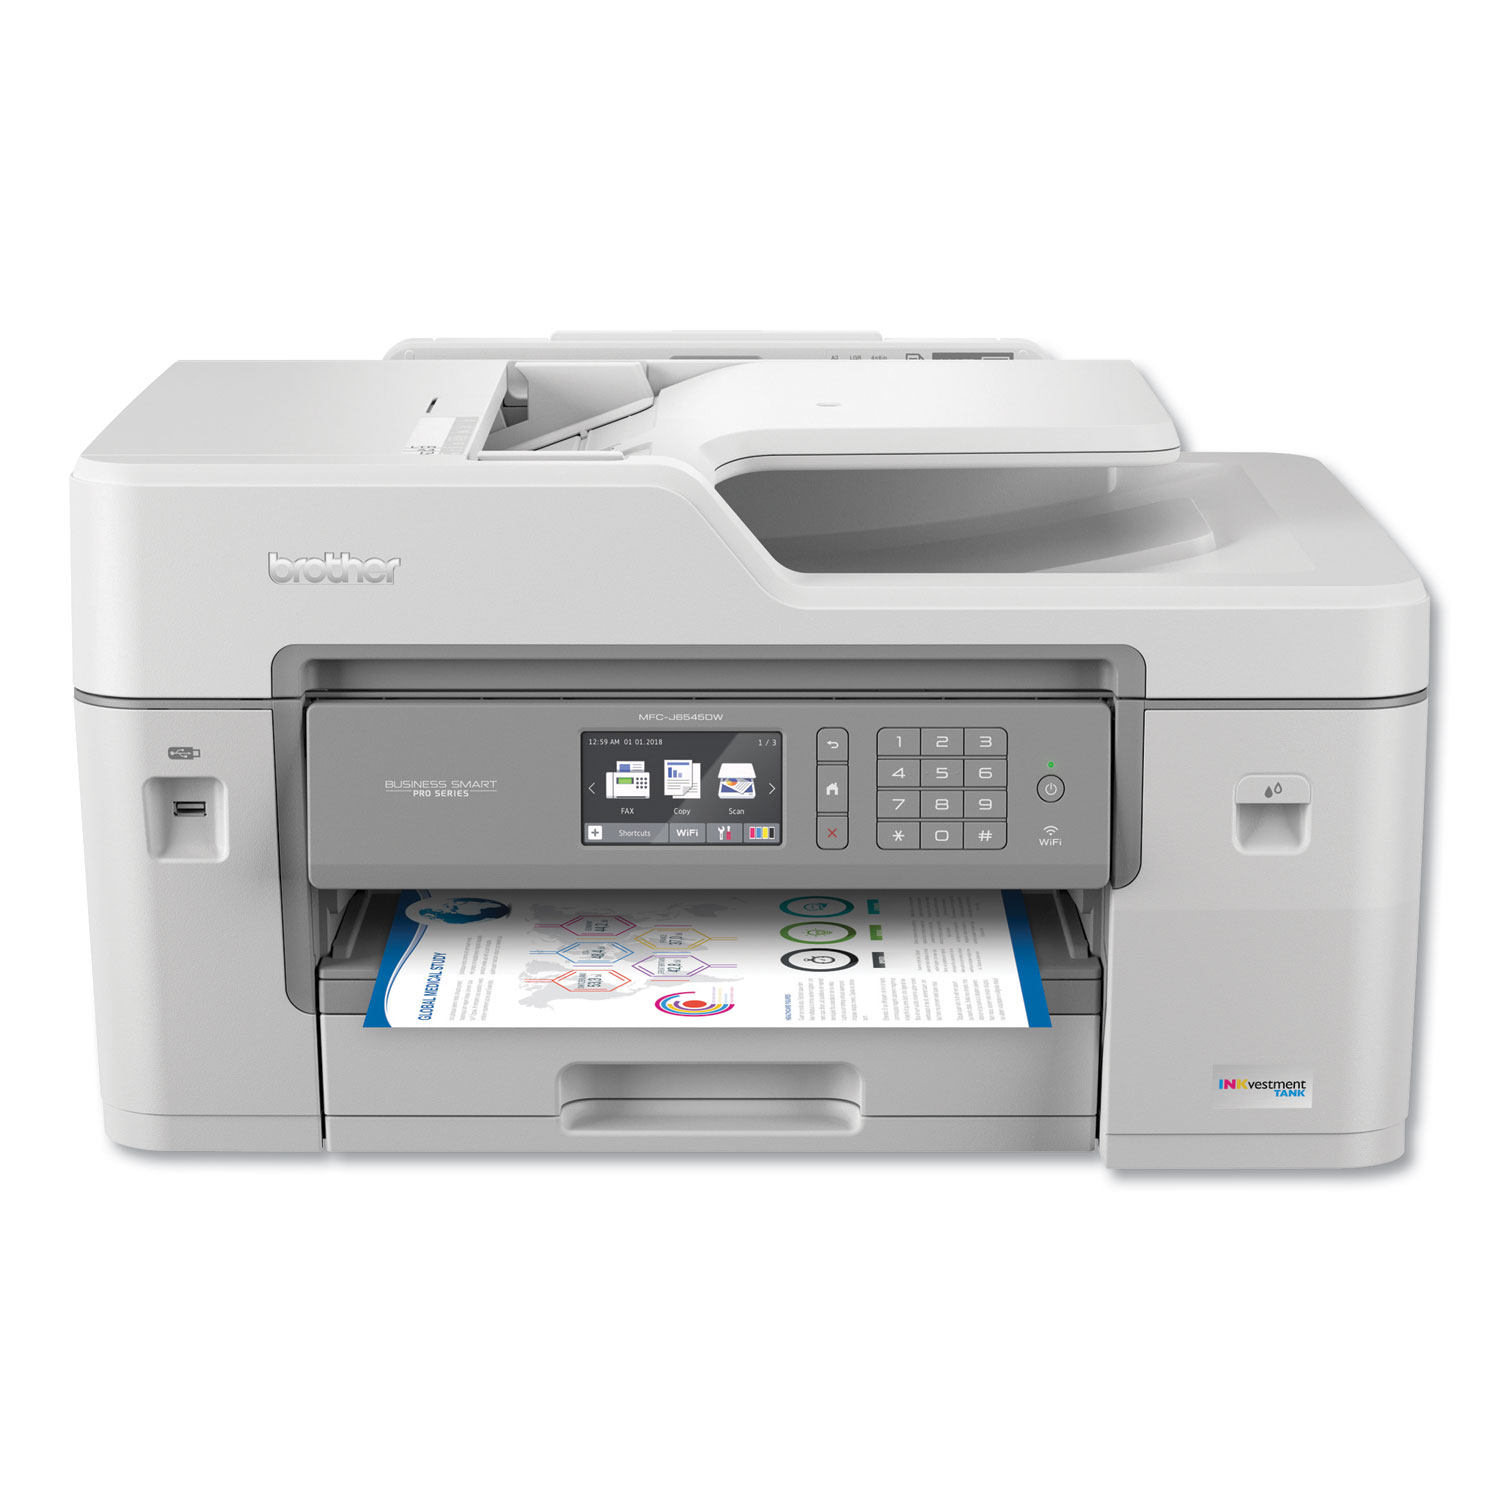 BRTMFCJ6545DWXL All-In-One Inkjet, Copy/Fax/Print/Scan